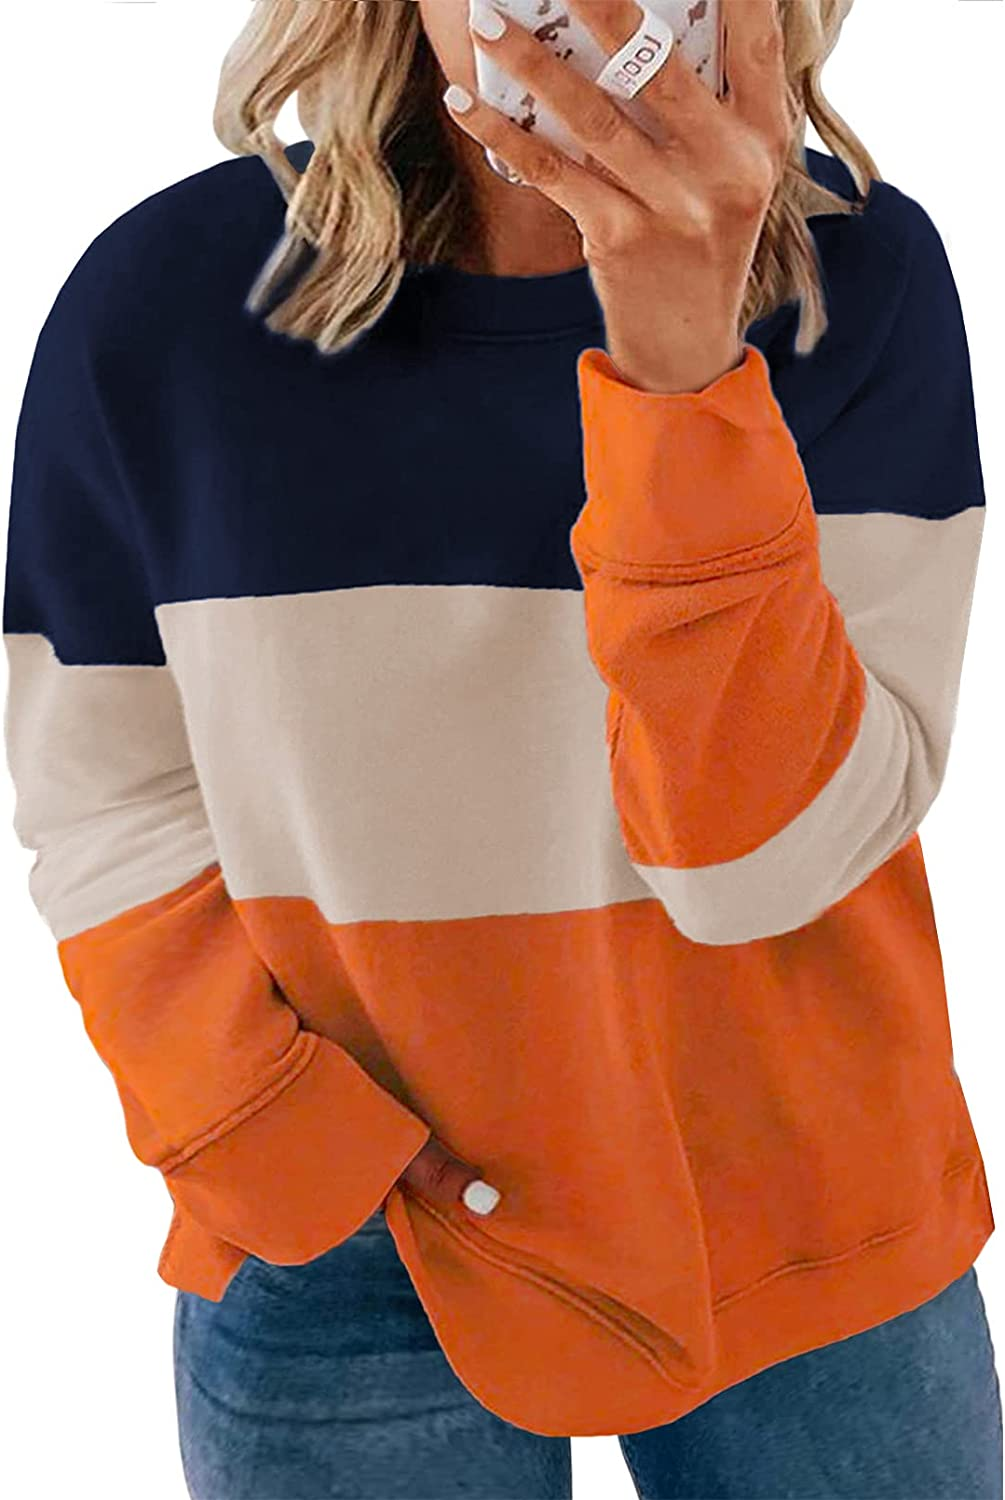 Happy Sailed Womens Plus Size Tie Dye Sweatshirt Casual Long Sleeve Crew Neck Colorblock Pullover Tops(1X-5X)